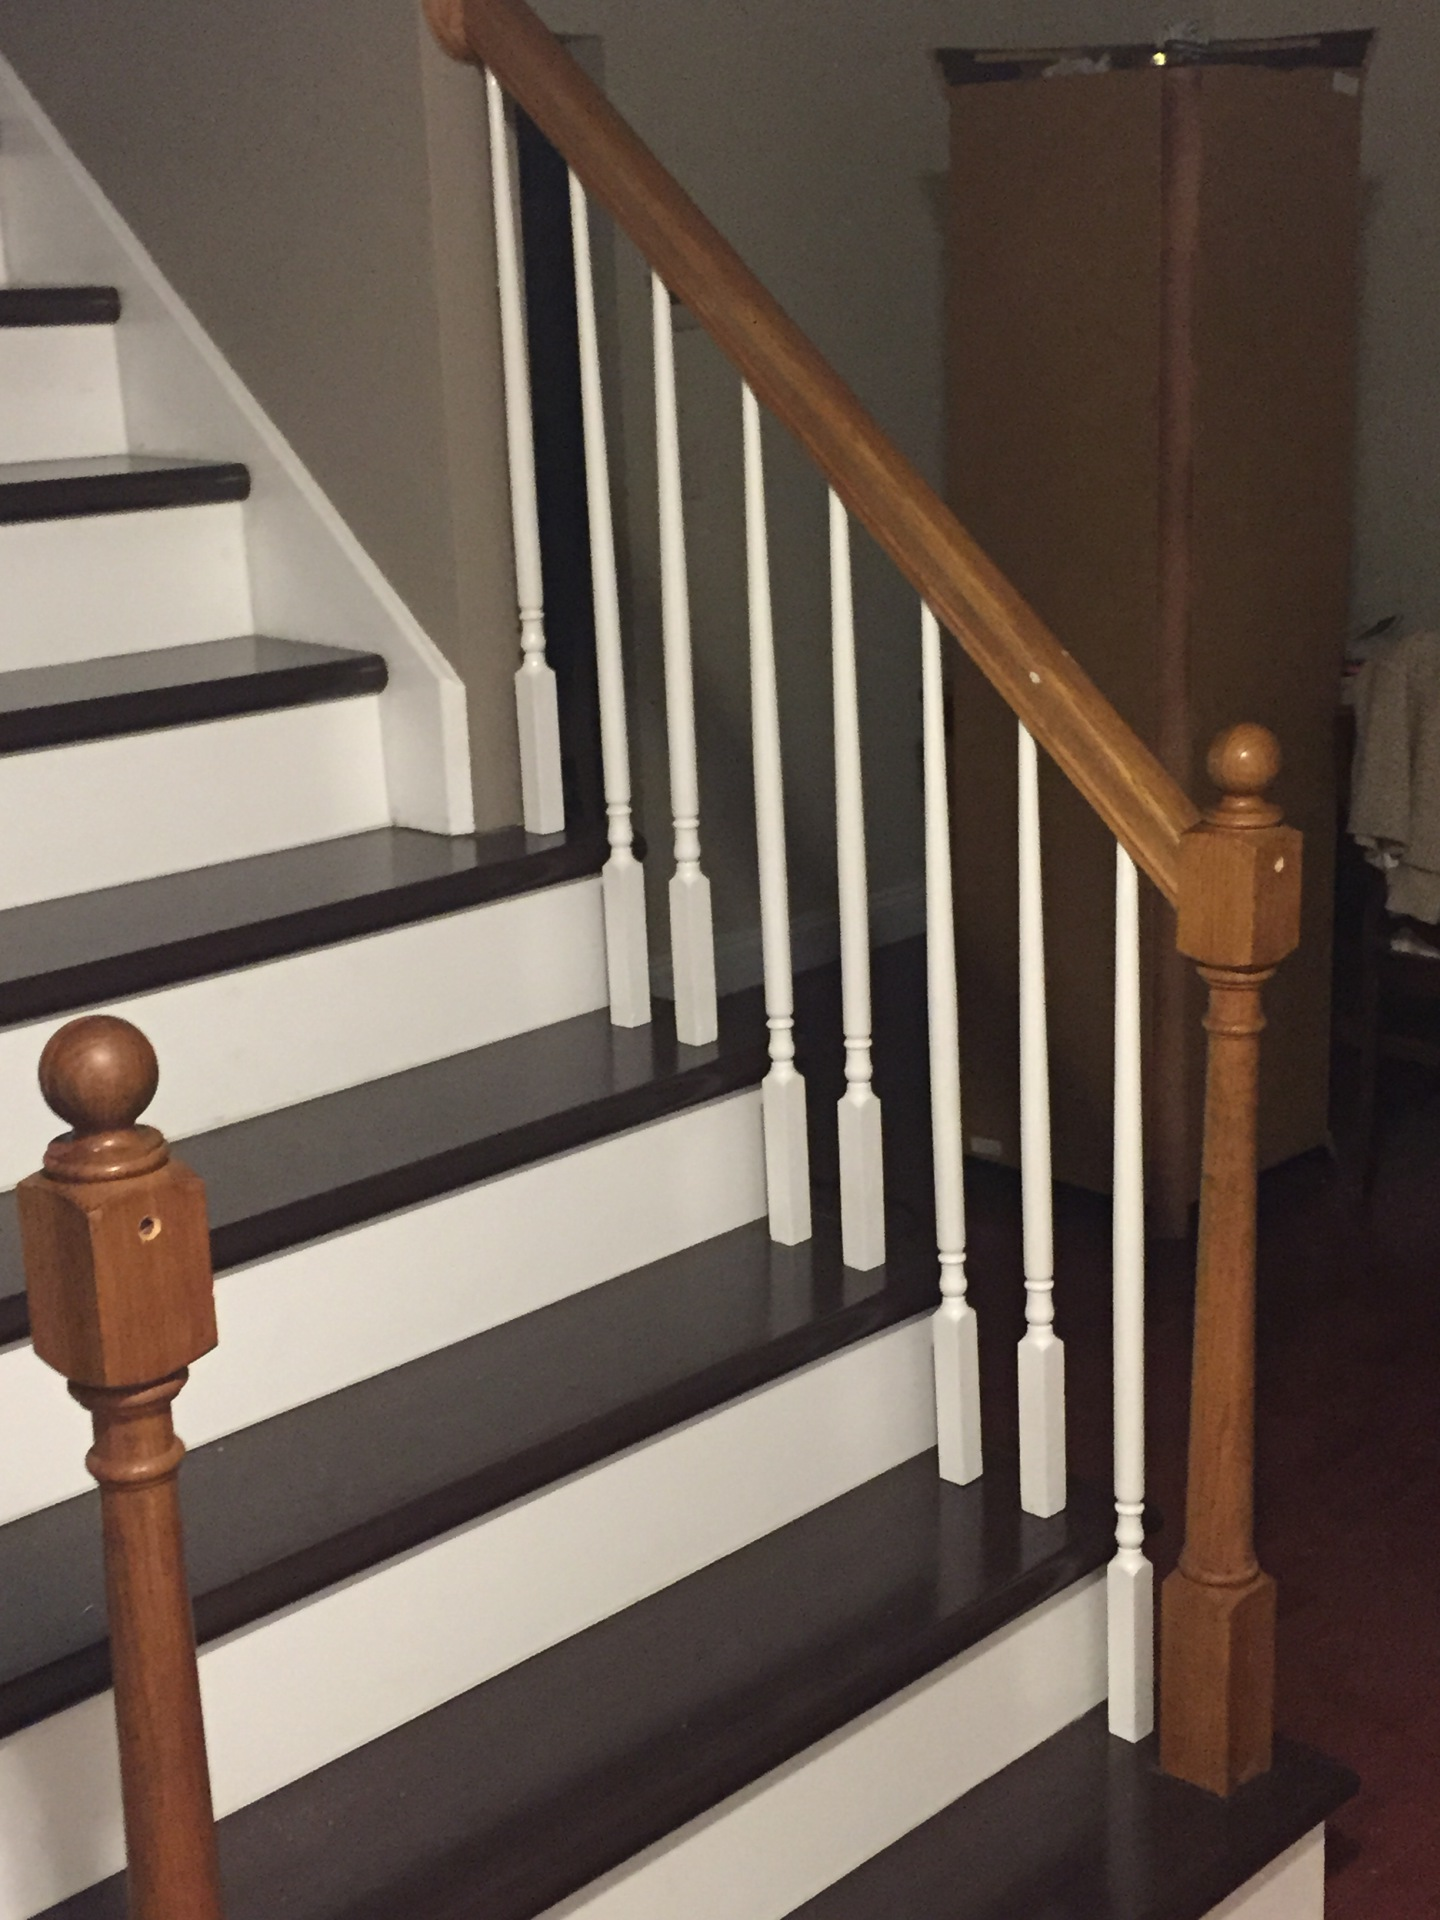 Install balusters